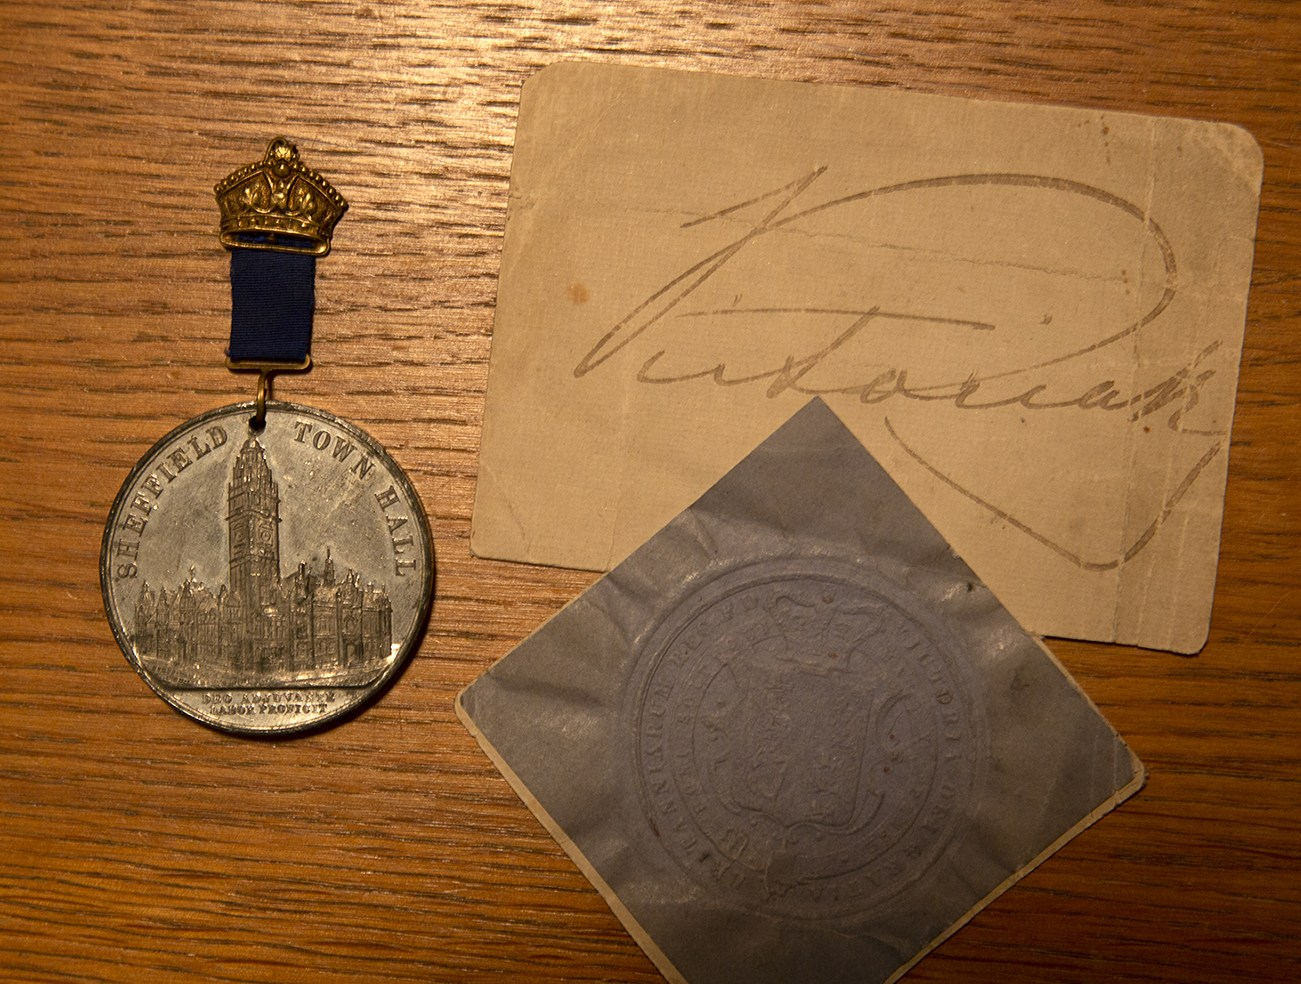 Medal received and facsimile signature.jpg